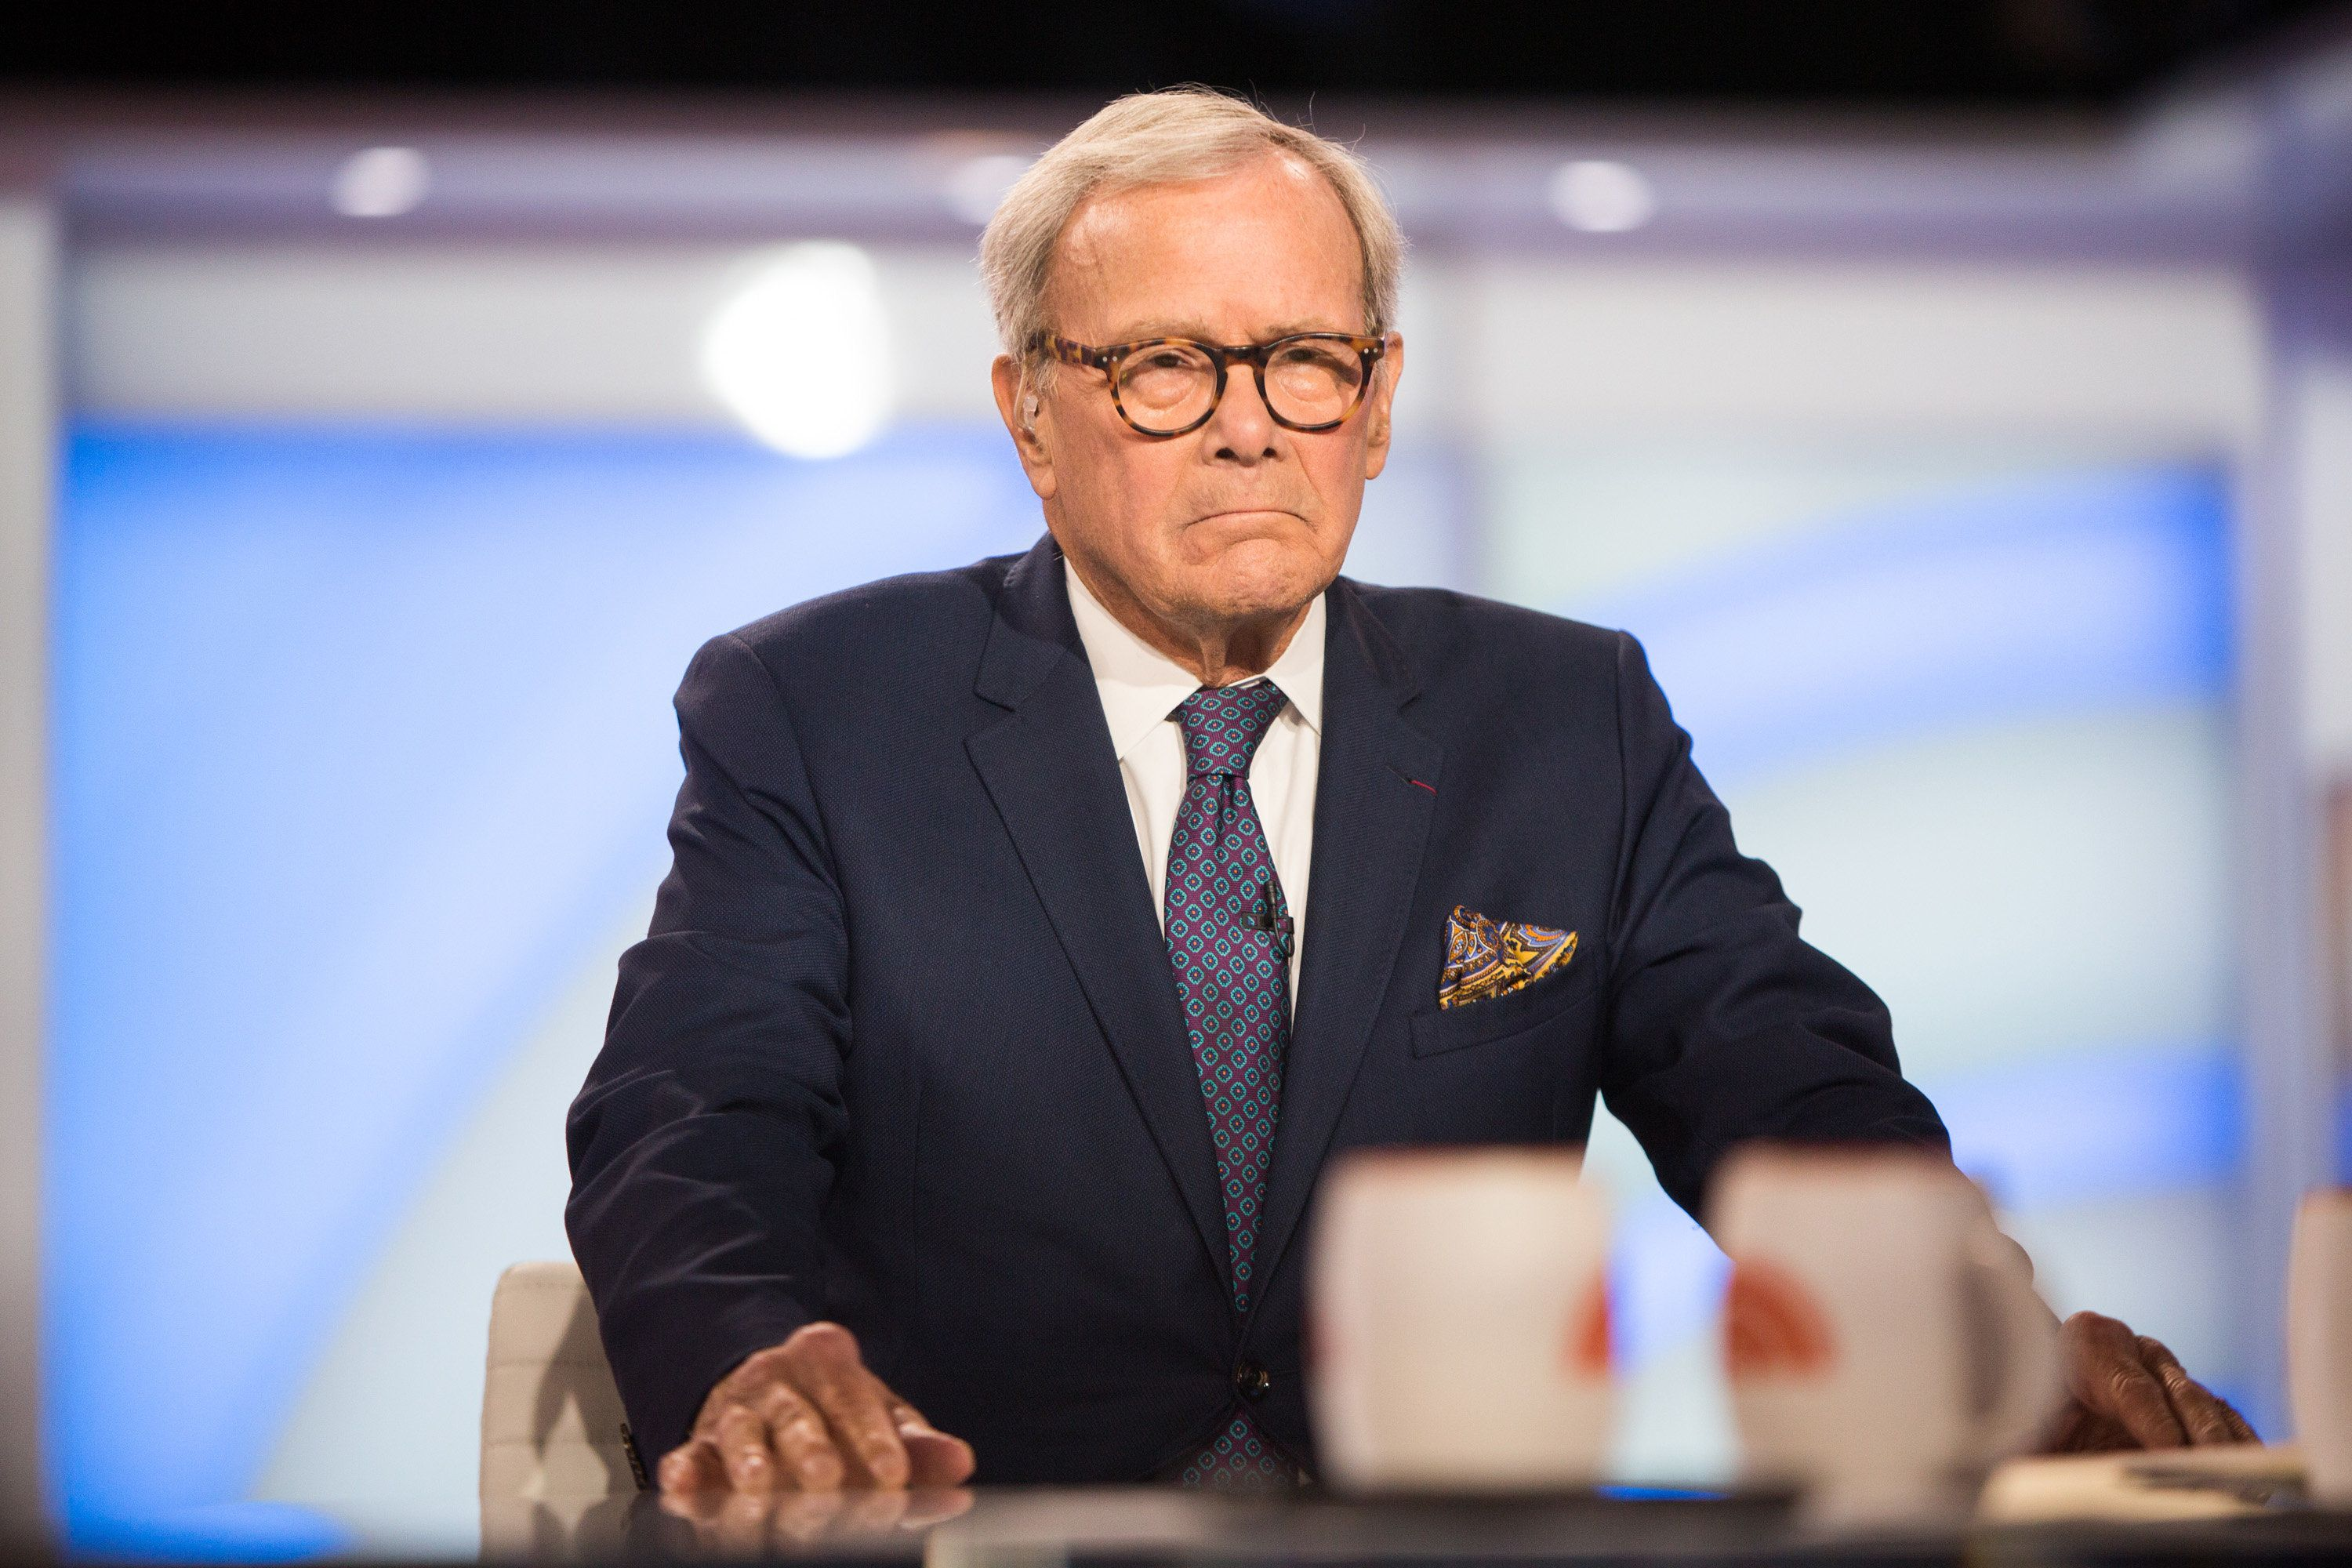 TODAY -- Pictured: Tom Brokaw on Friday, April 6, 2018 -- (Photo by: Nathan Congleton/NBC/NBCU Photo Bank via Getty Images)